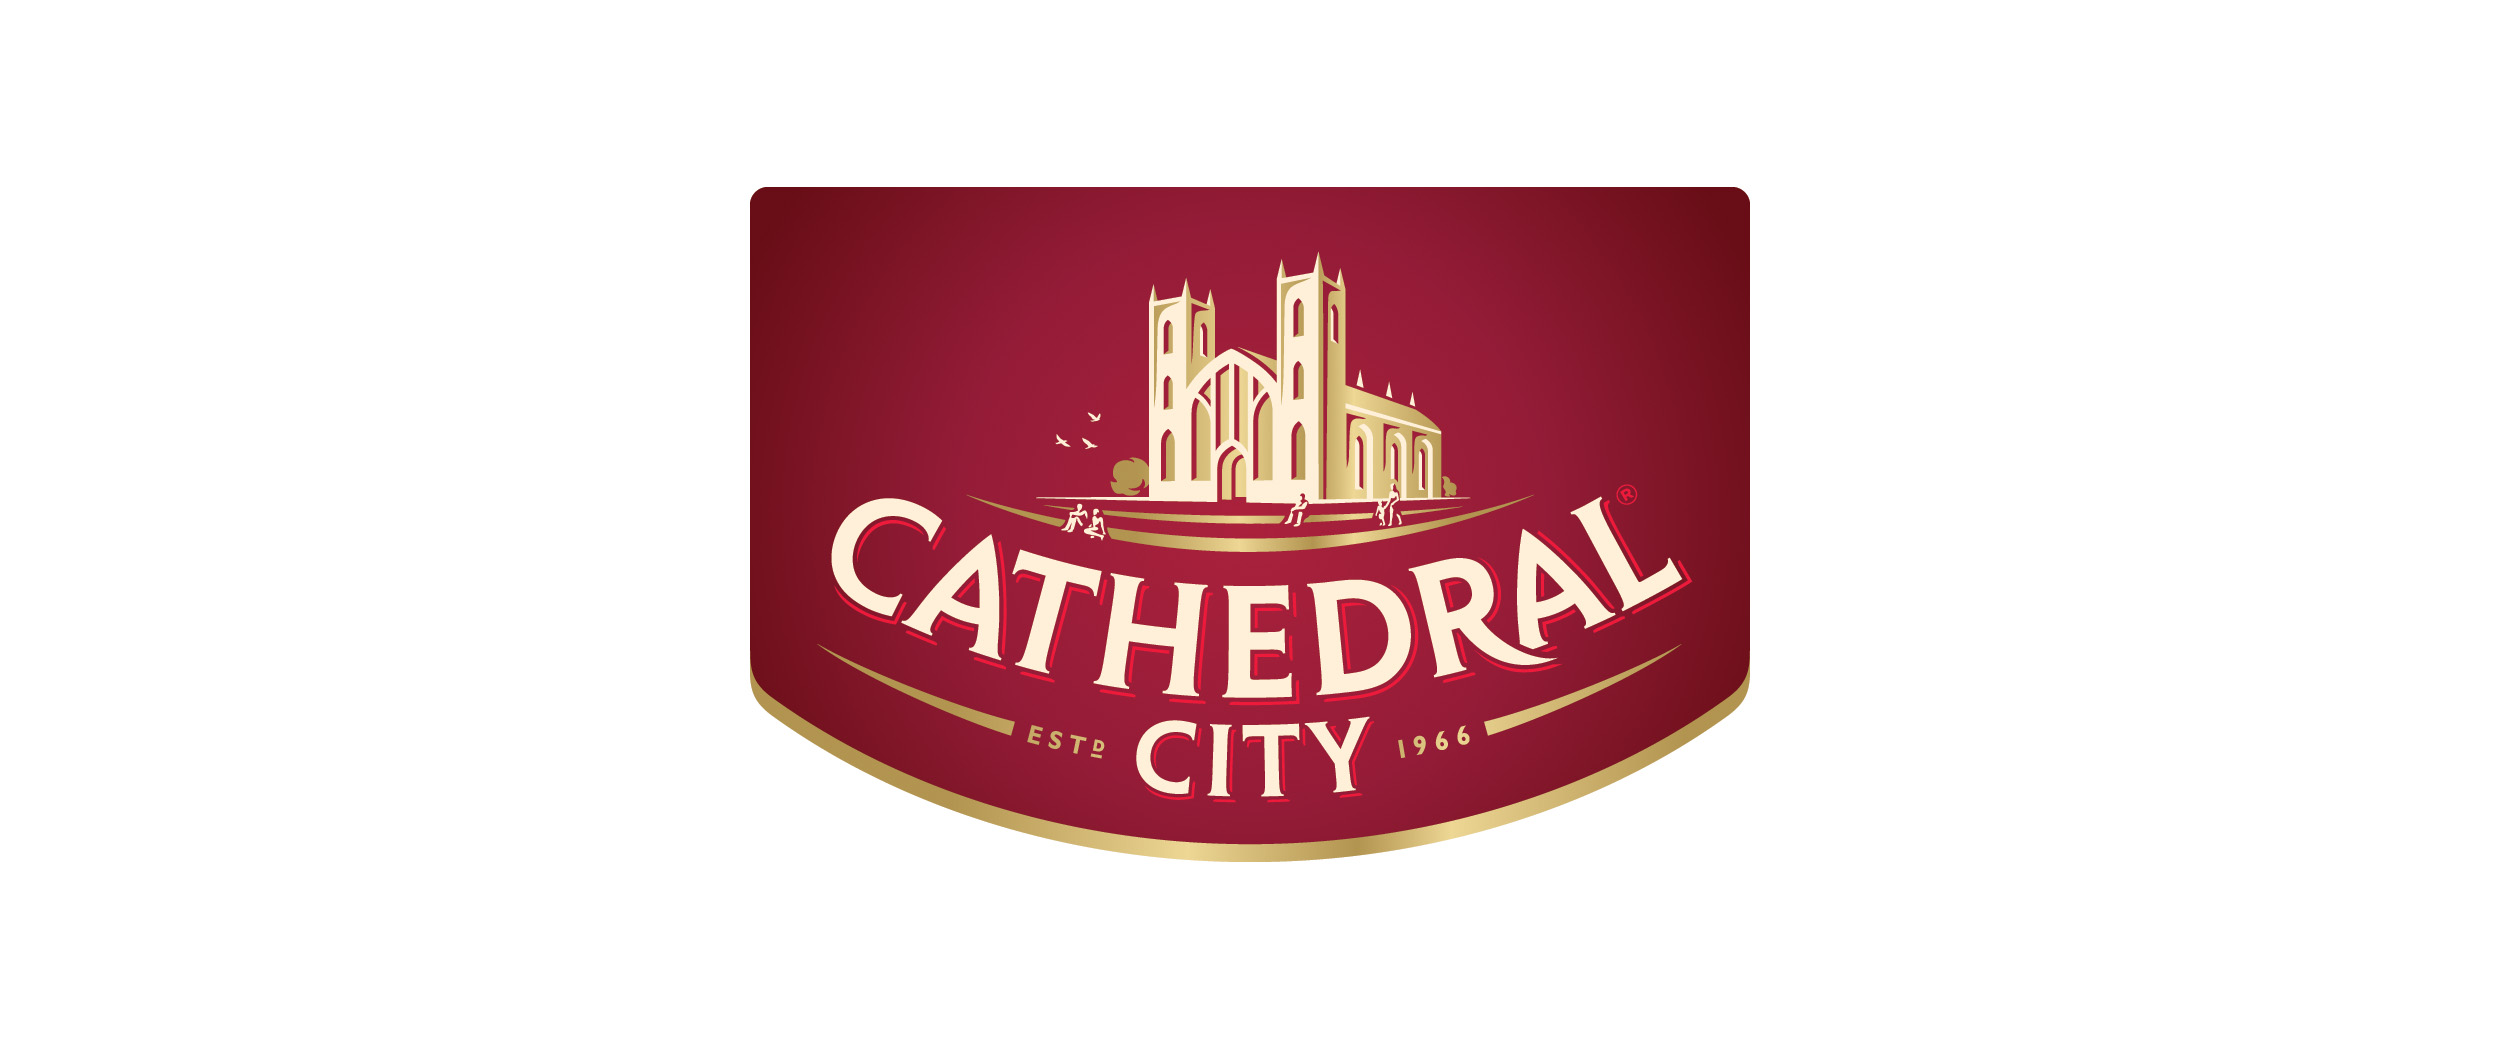 Cathedral City Logo with holding device copy.jpg